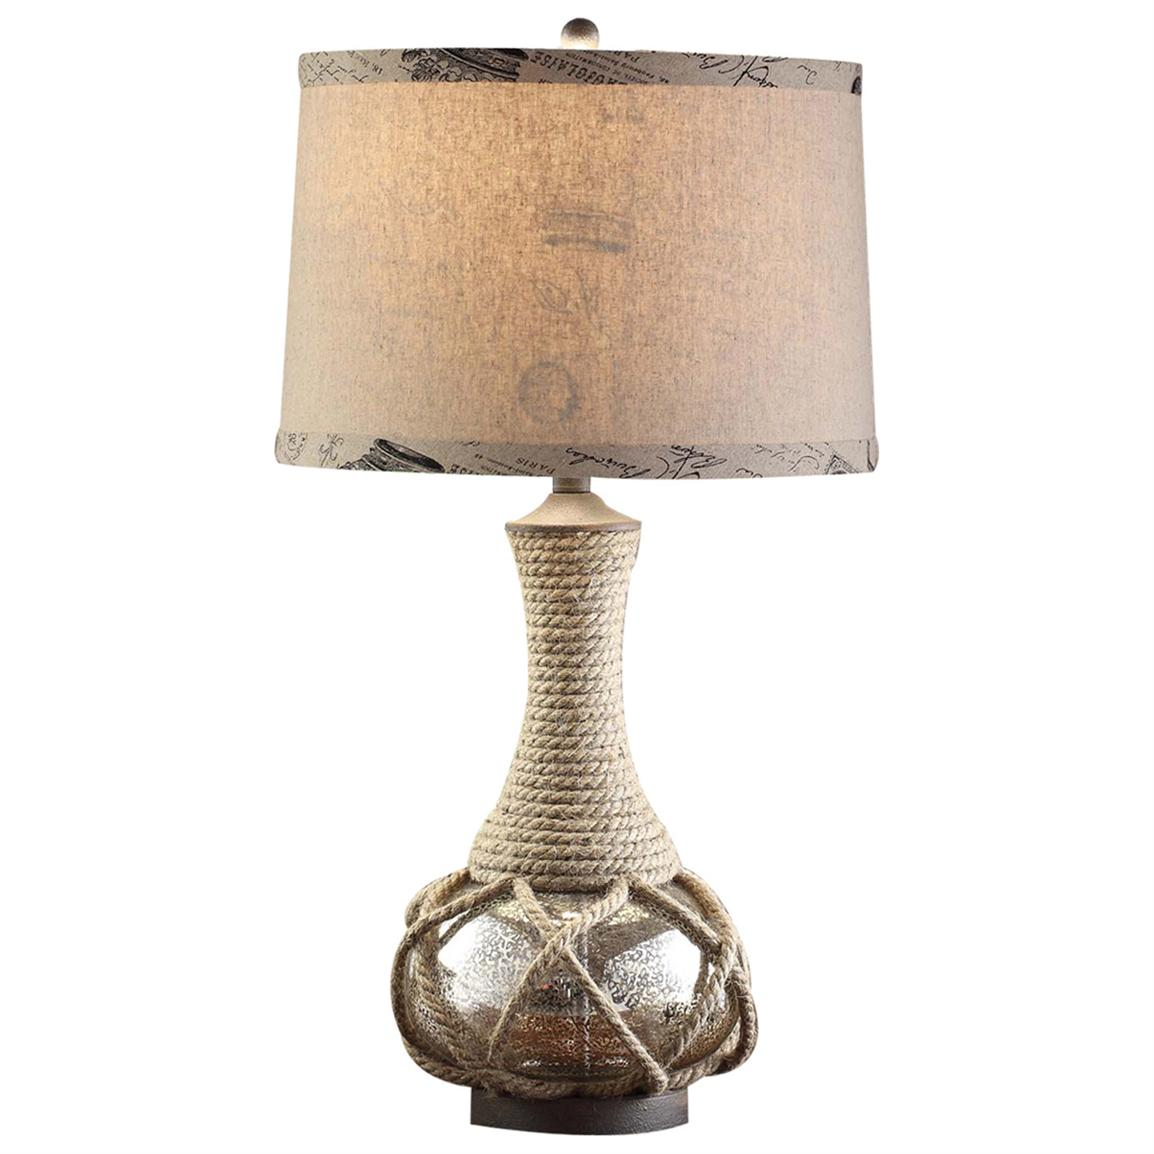 Freeport Table Lamp from Crestview Collection